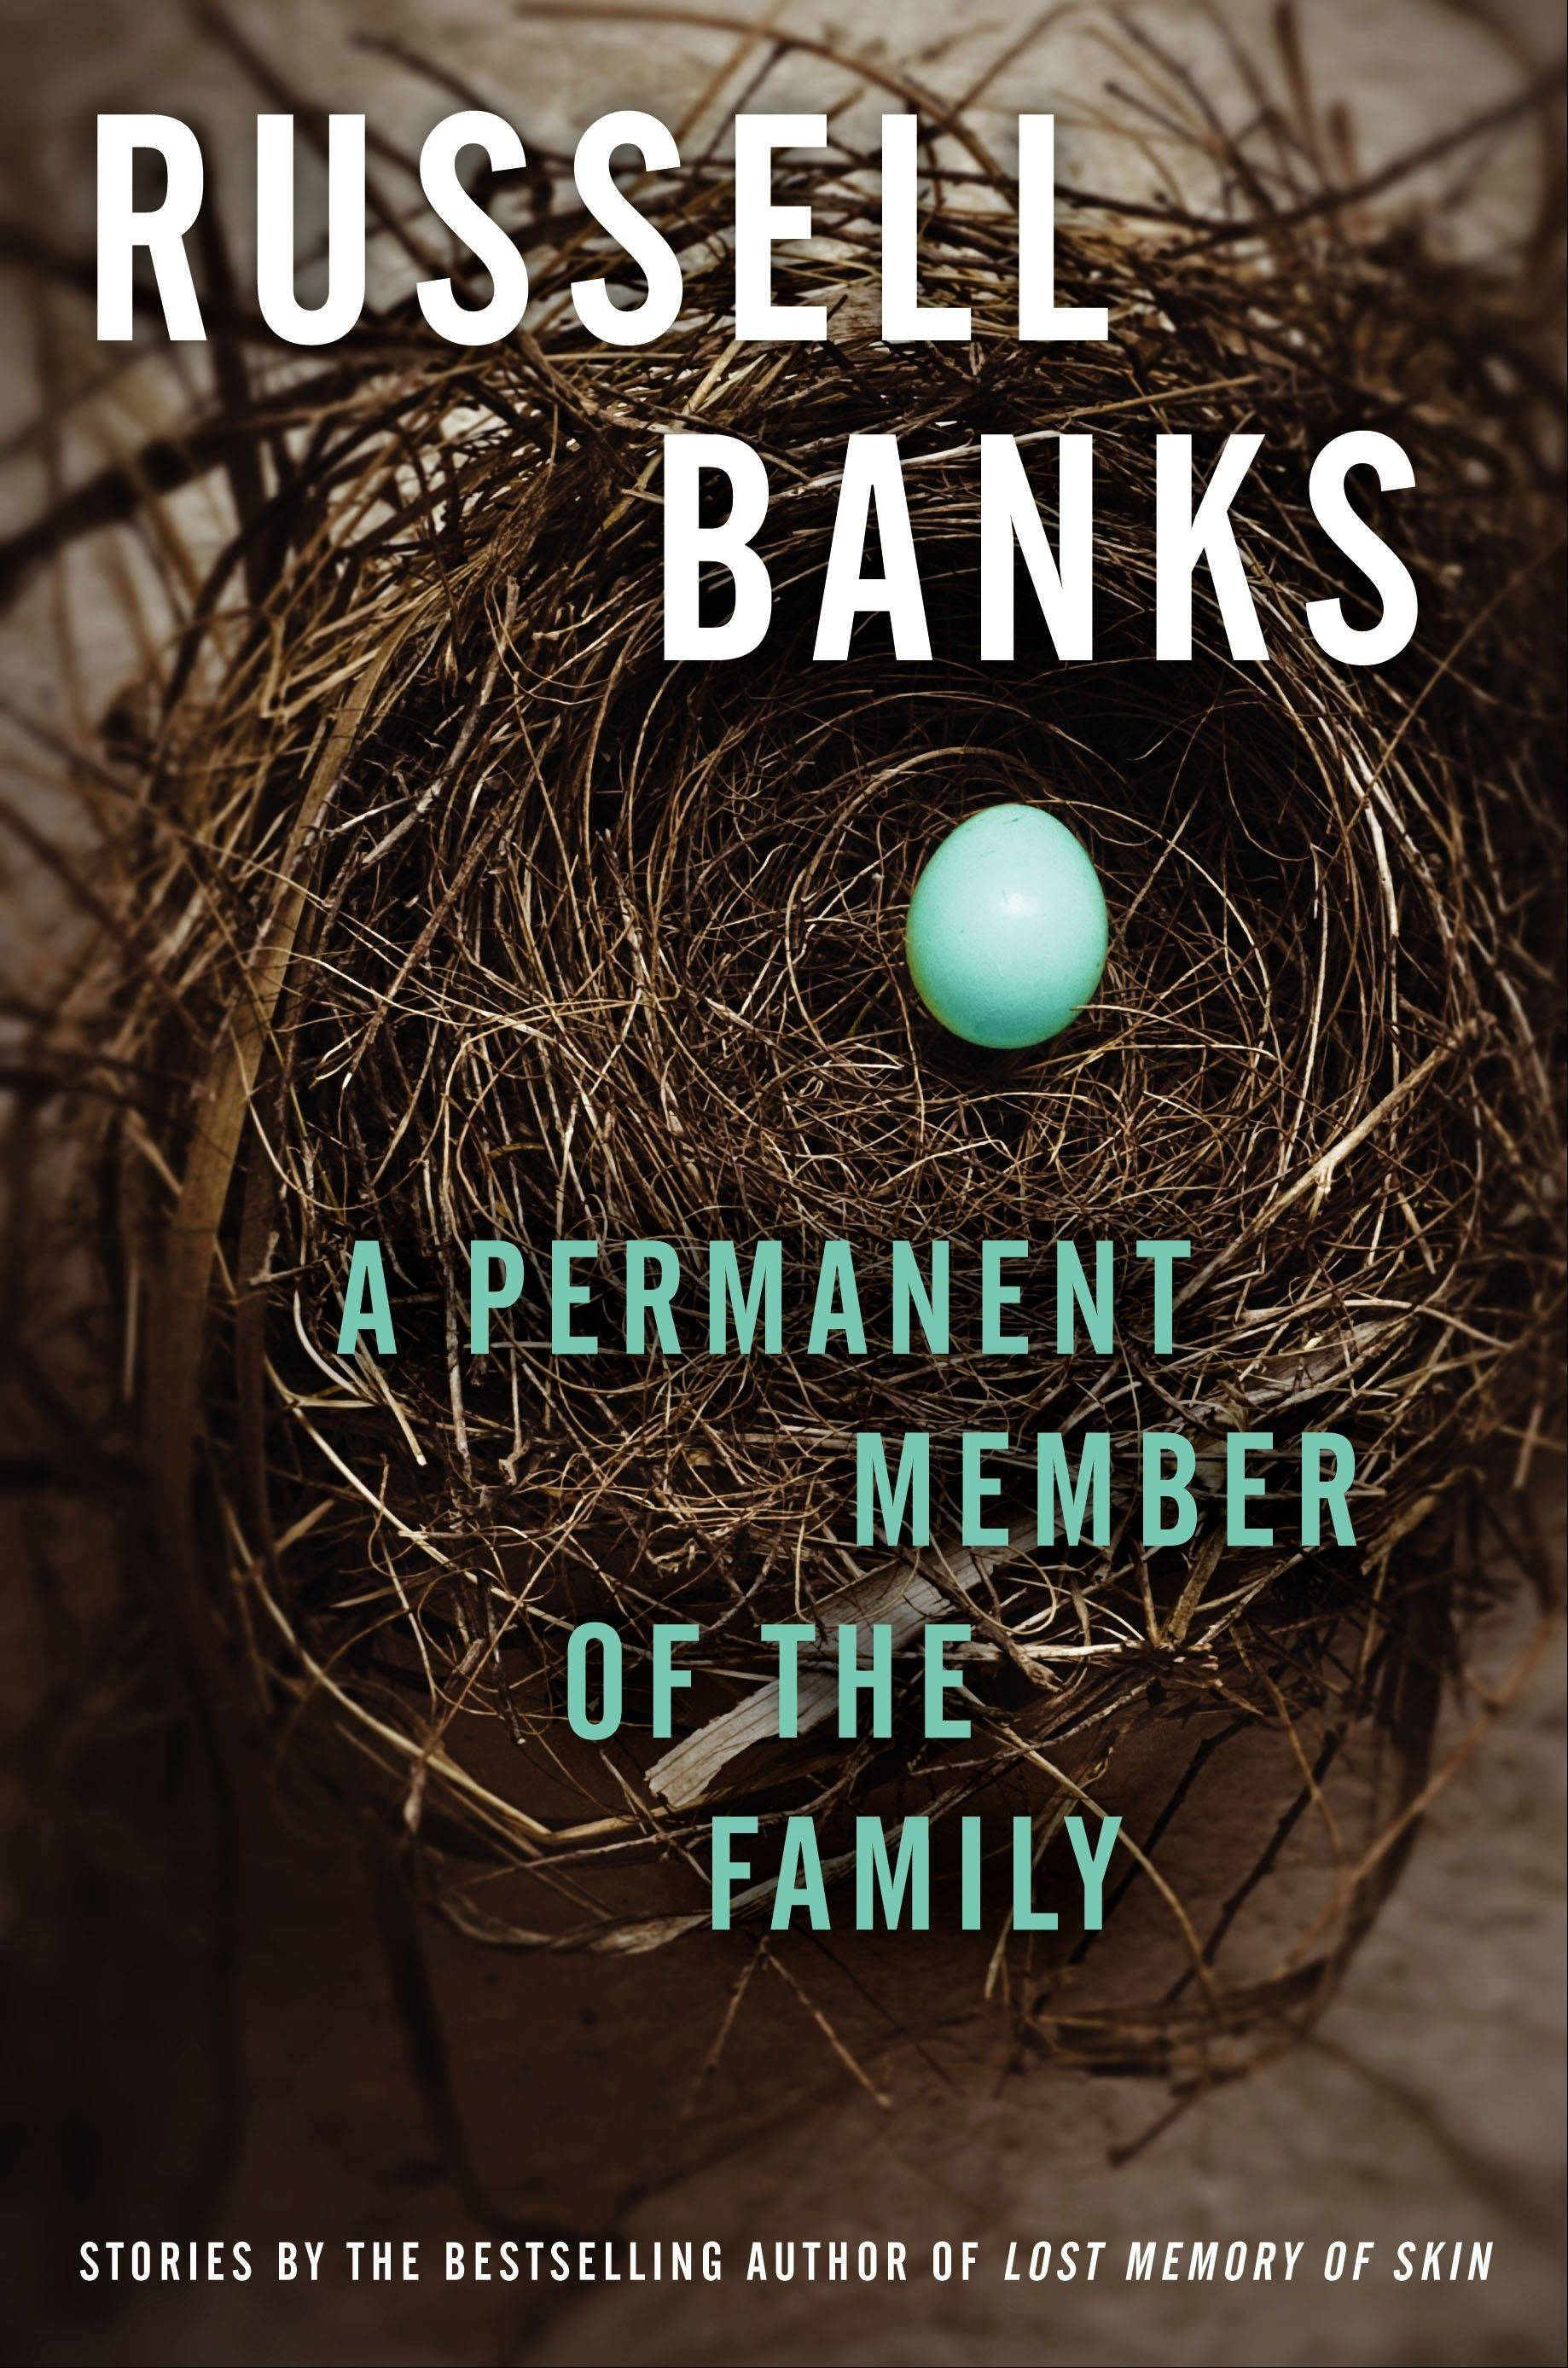 """A Permanent Member of the Family"" is a collection of short stories by Russell Banks."